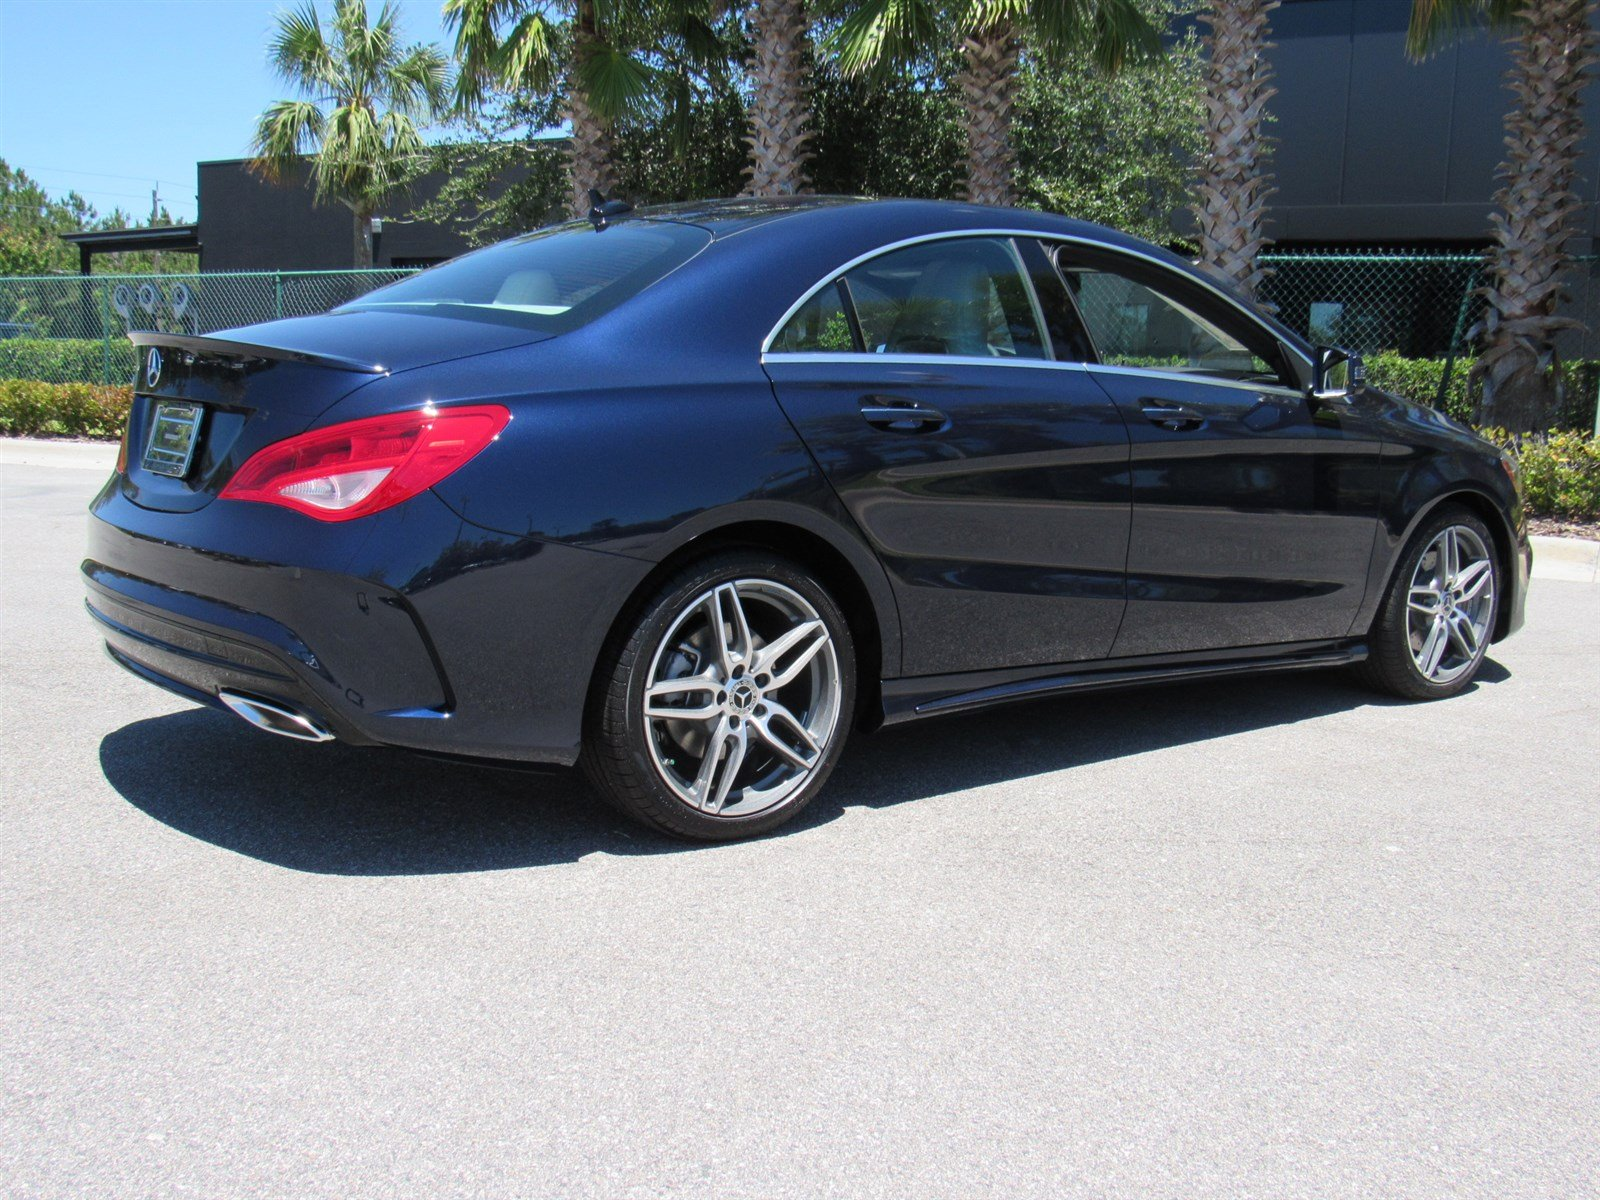 Pre owned 2018 mercedes benz cla cla 250 coupe in daytona for 2018 mercedes benz cla 250 coupe